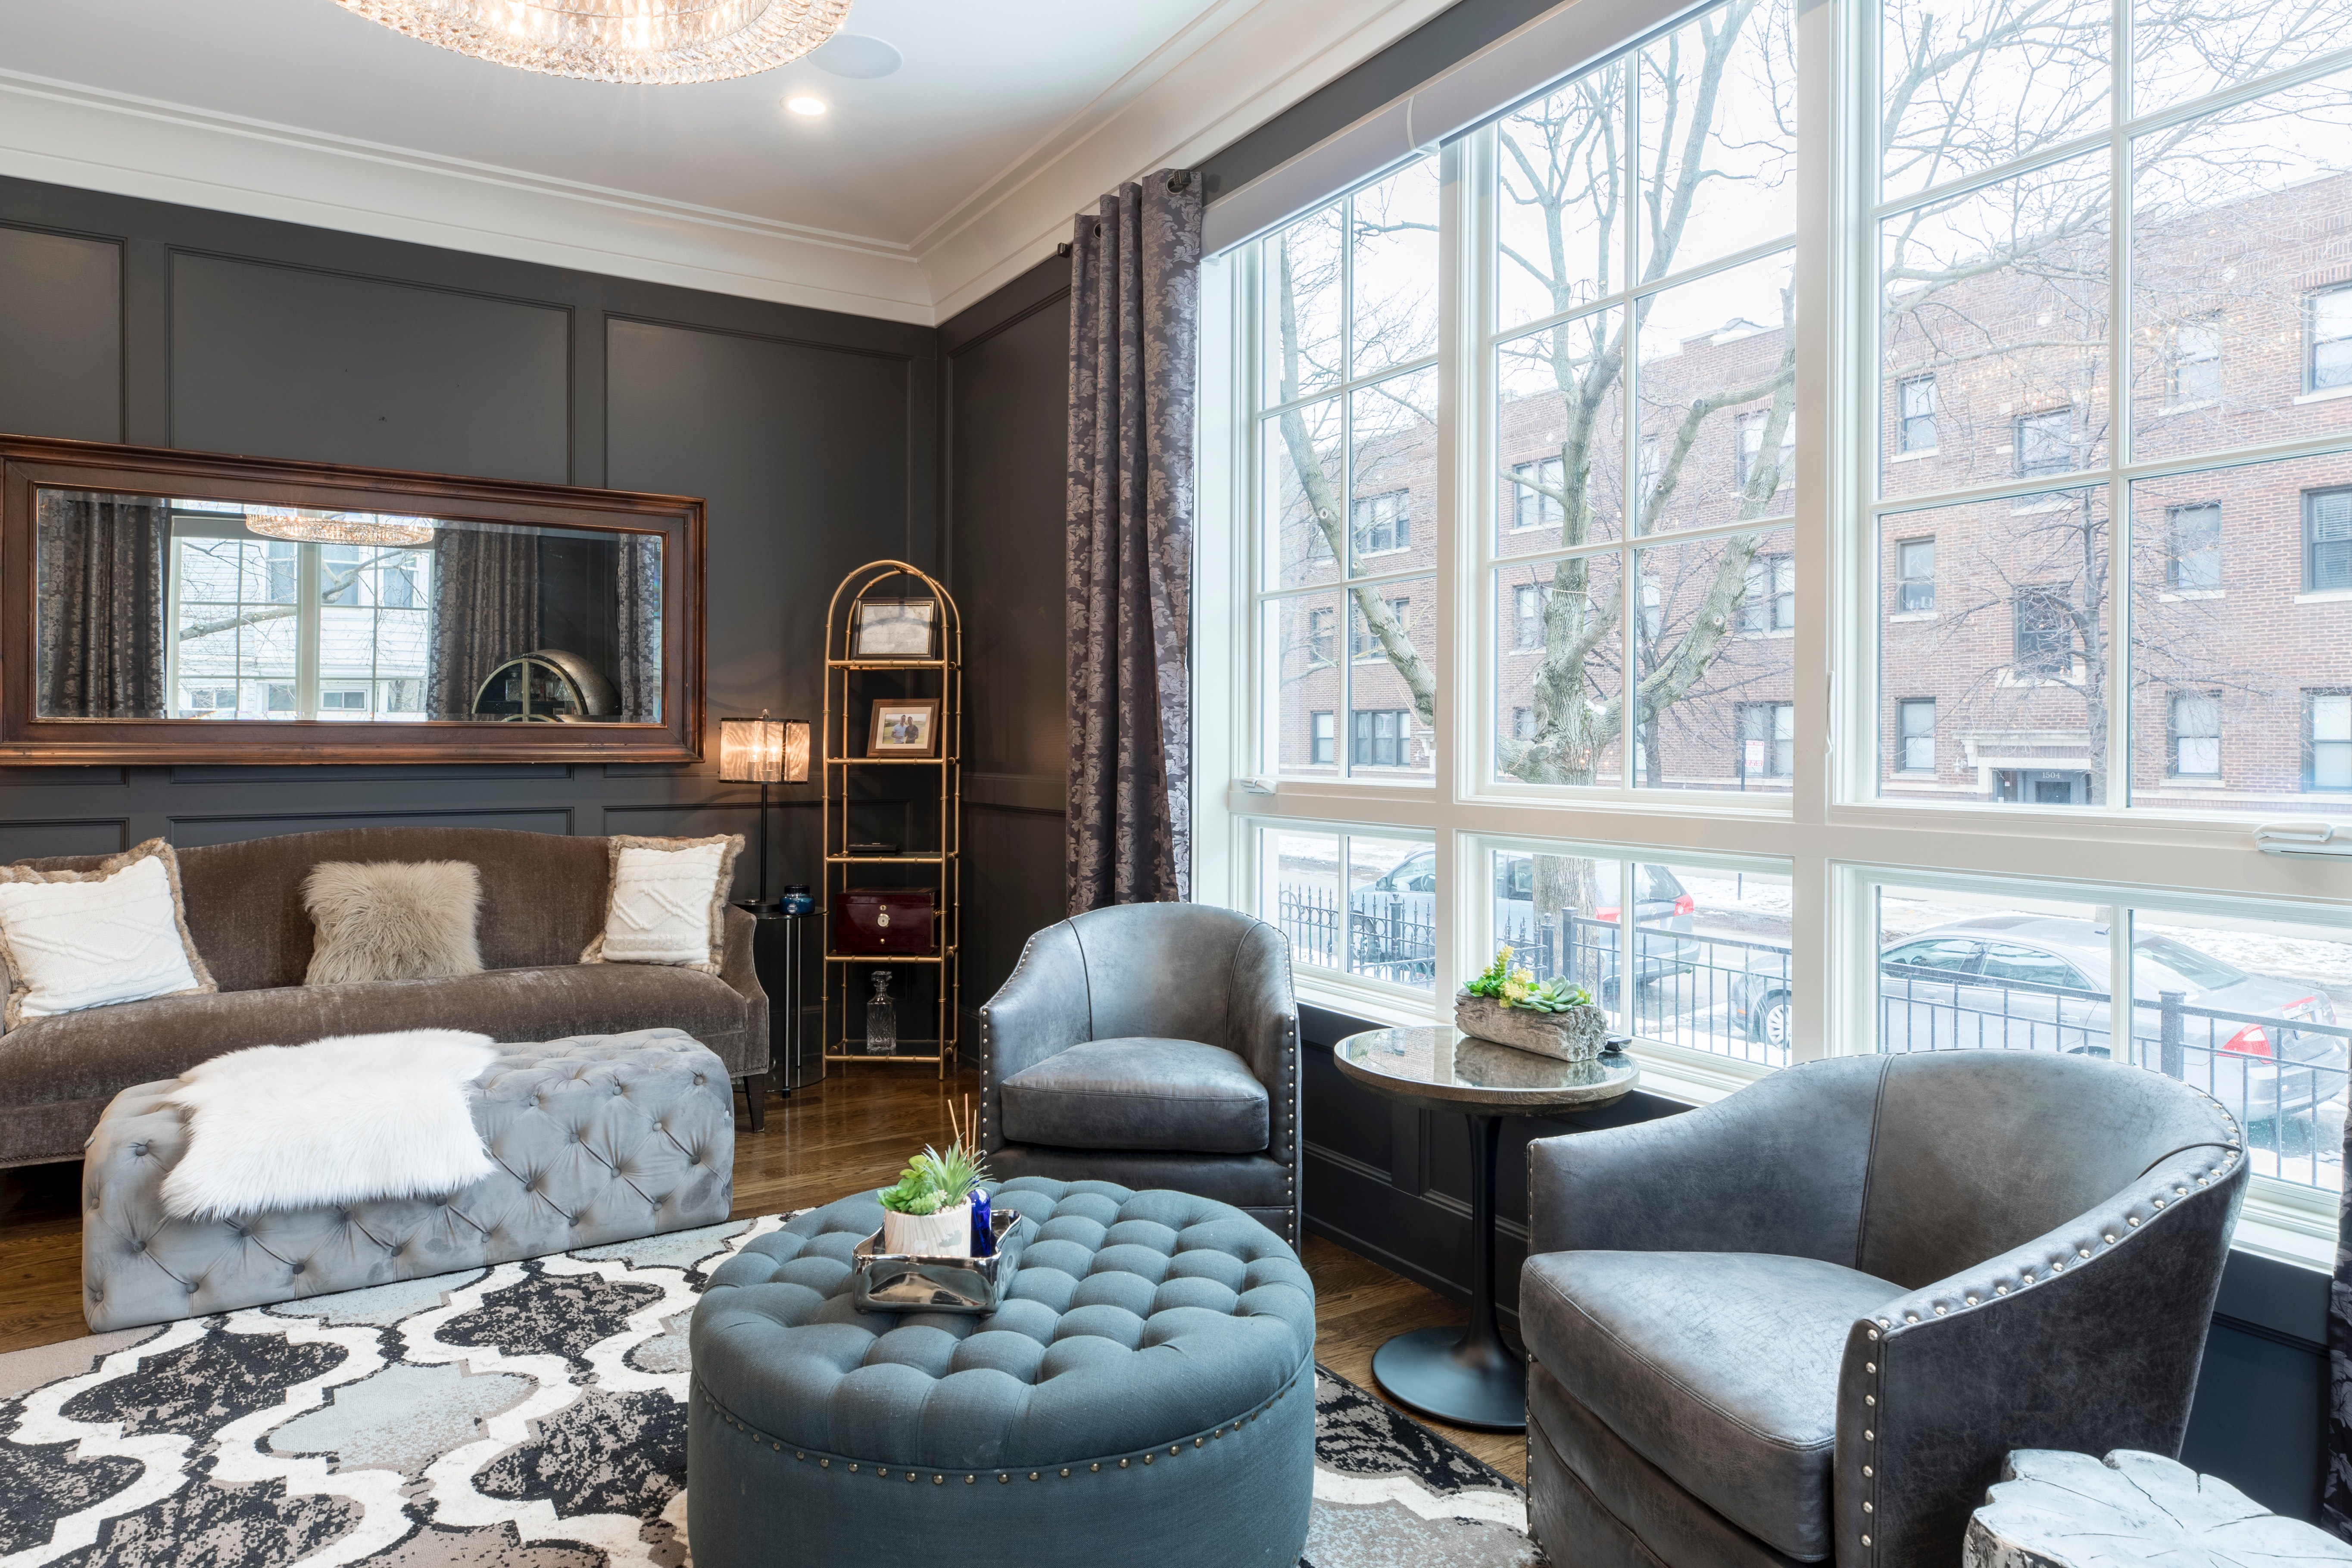 Successful Eclectic Living Room Design in 5 Easy Steps